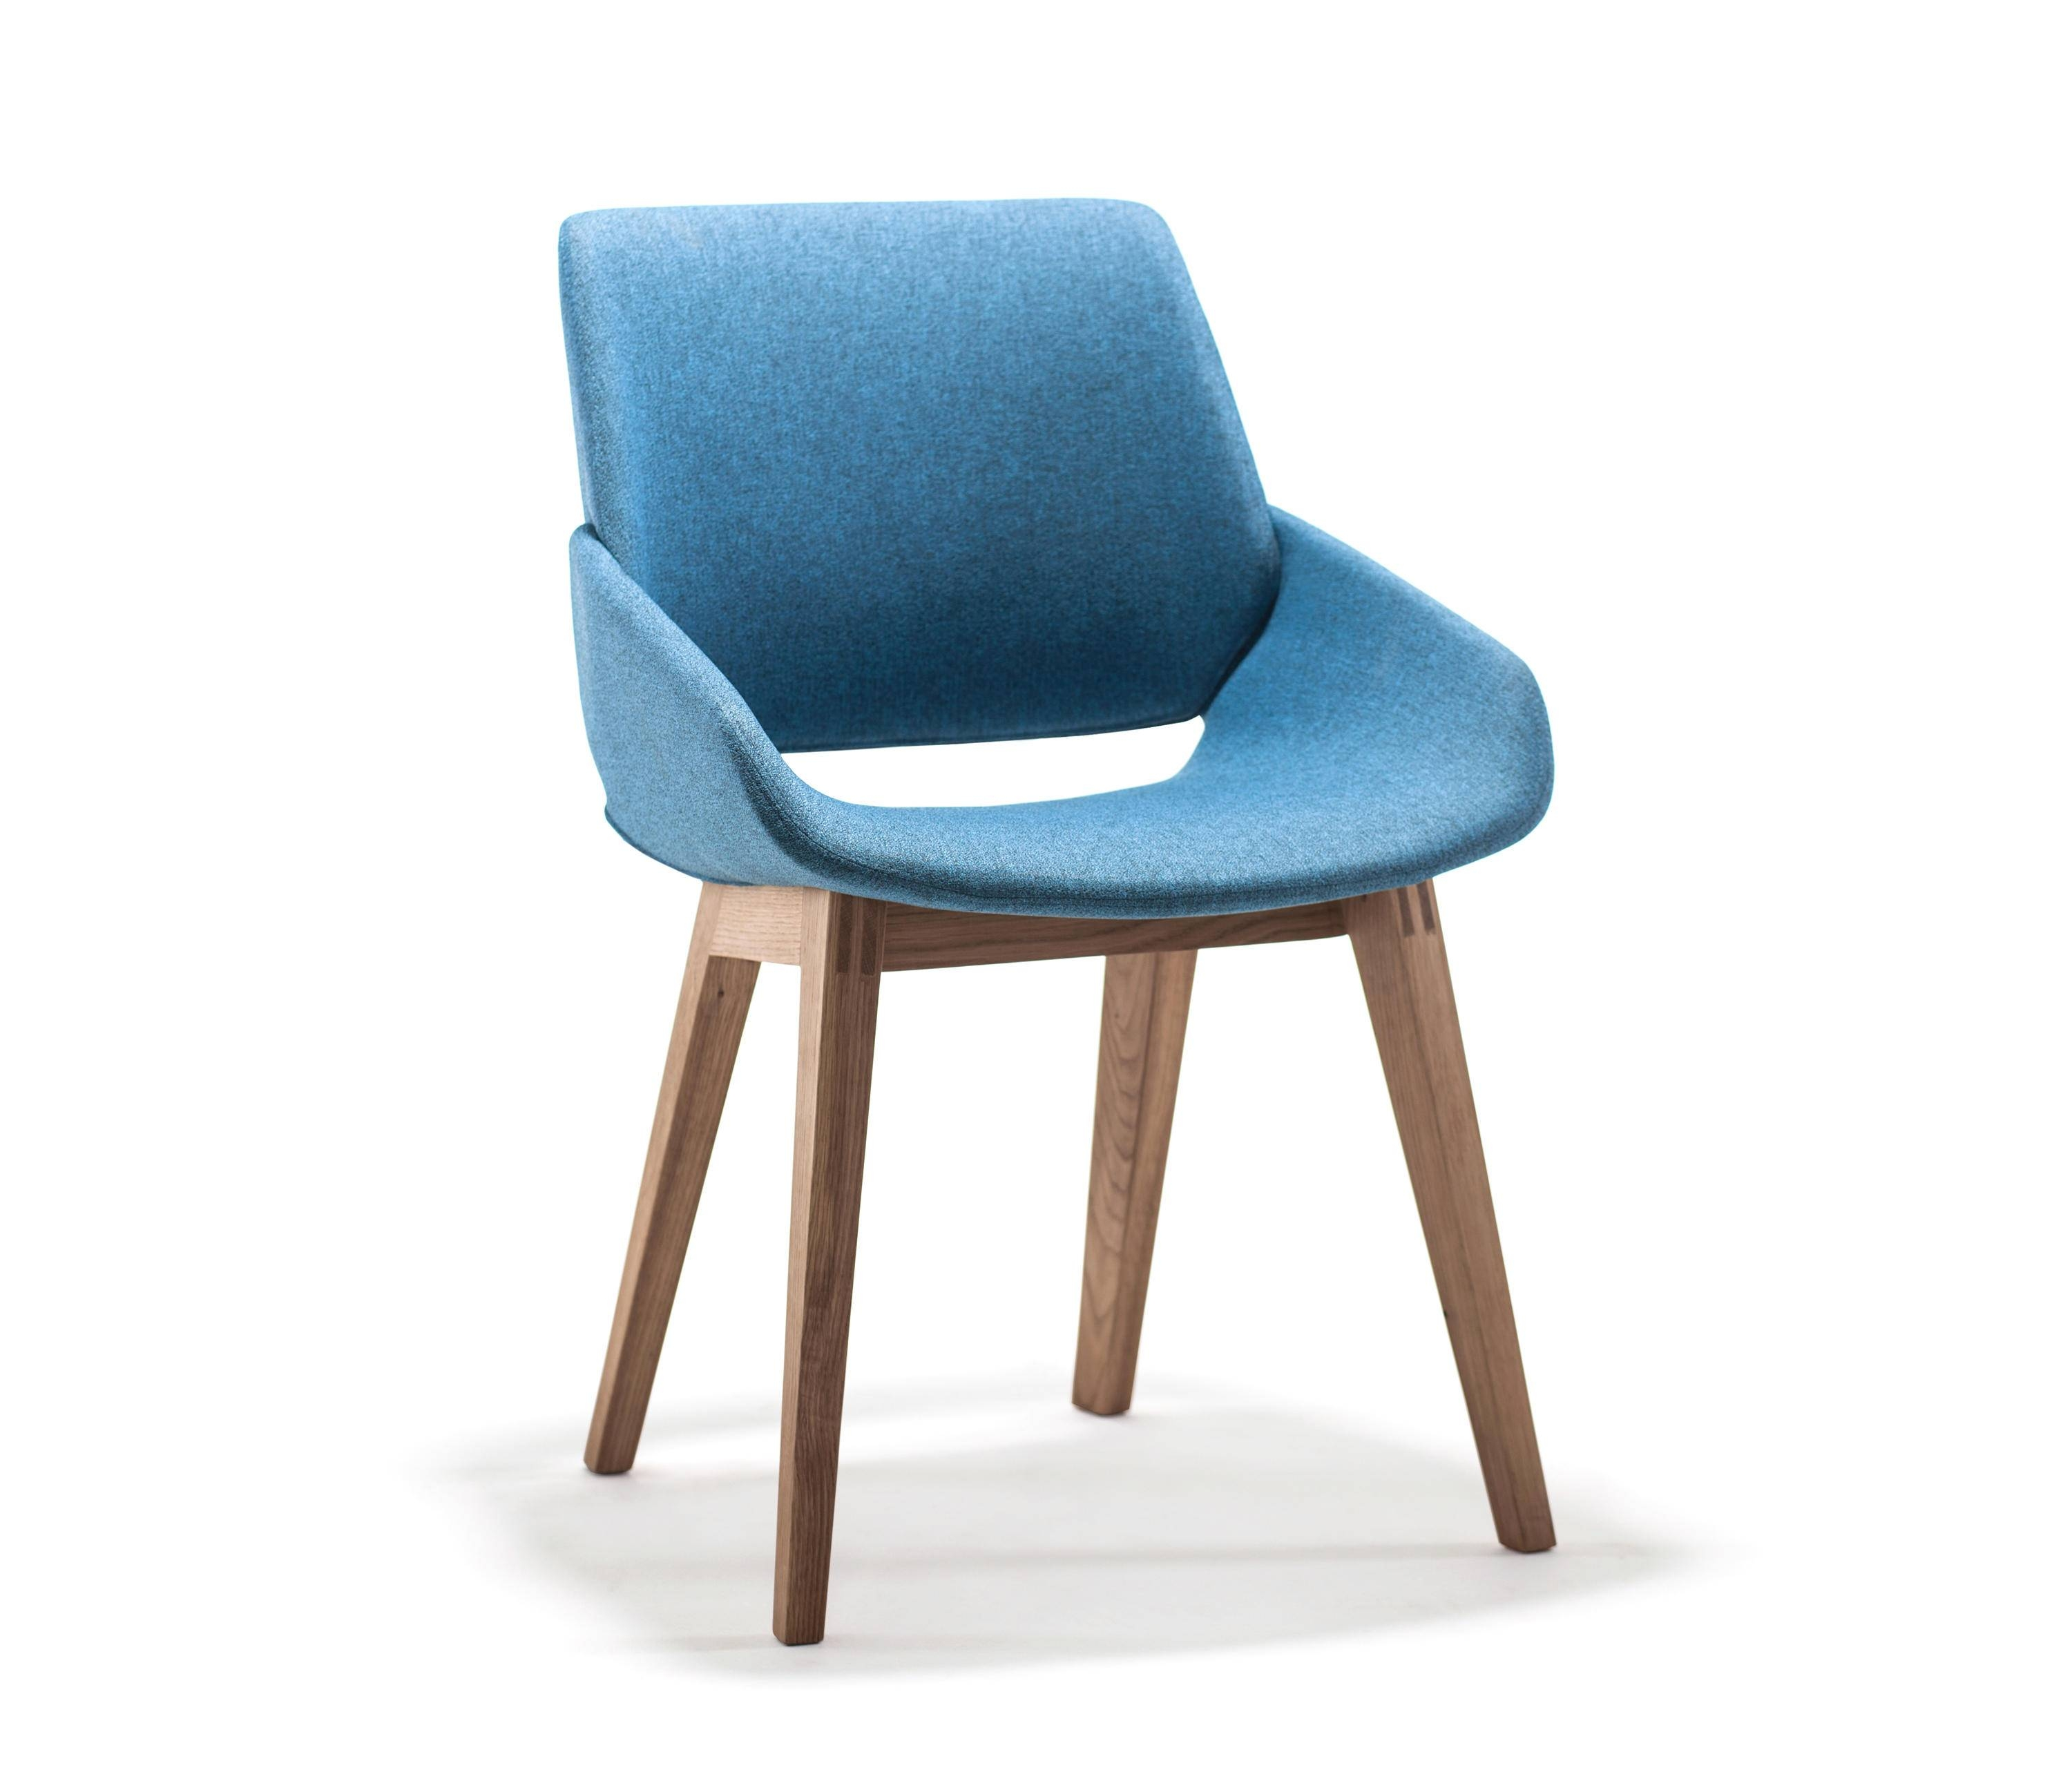 Monk Chair – Visitors Chairs / Side Chairs From Prostoria | Architonic Intended For Monk Chairs (View 2 of 30)